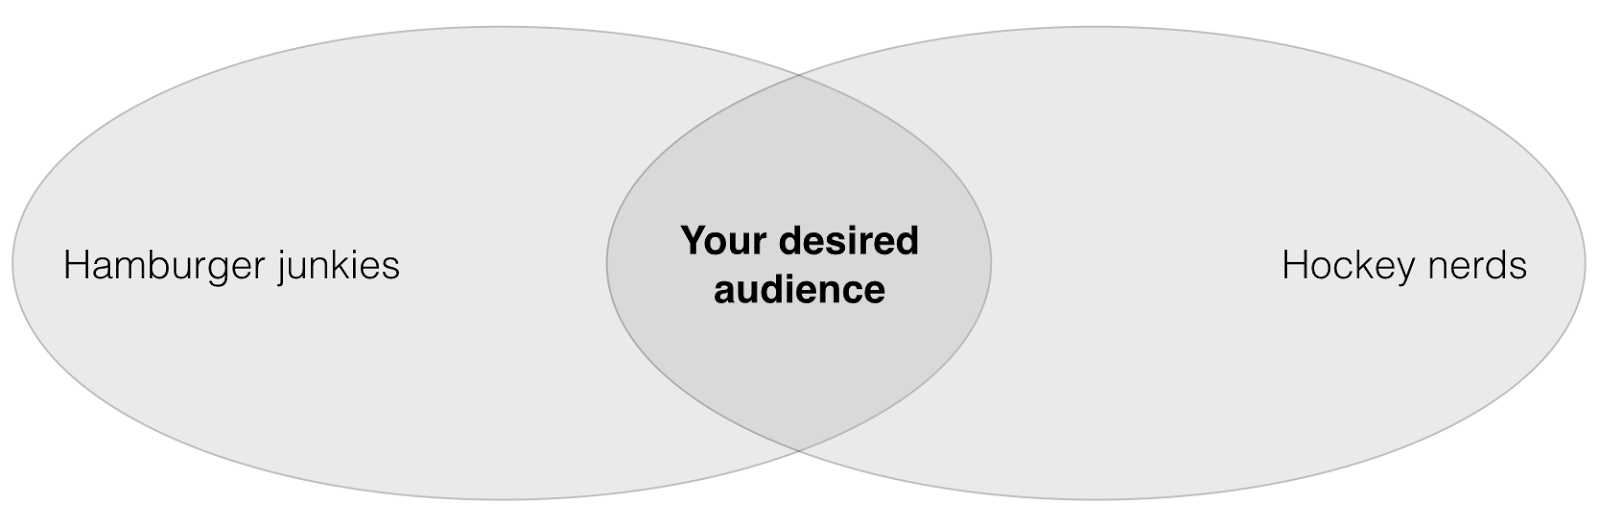 Desired Facebook audience